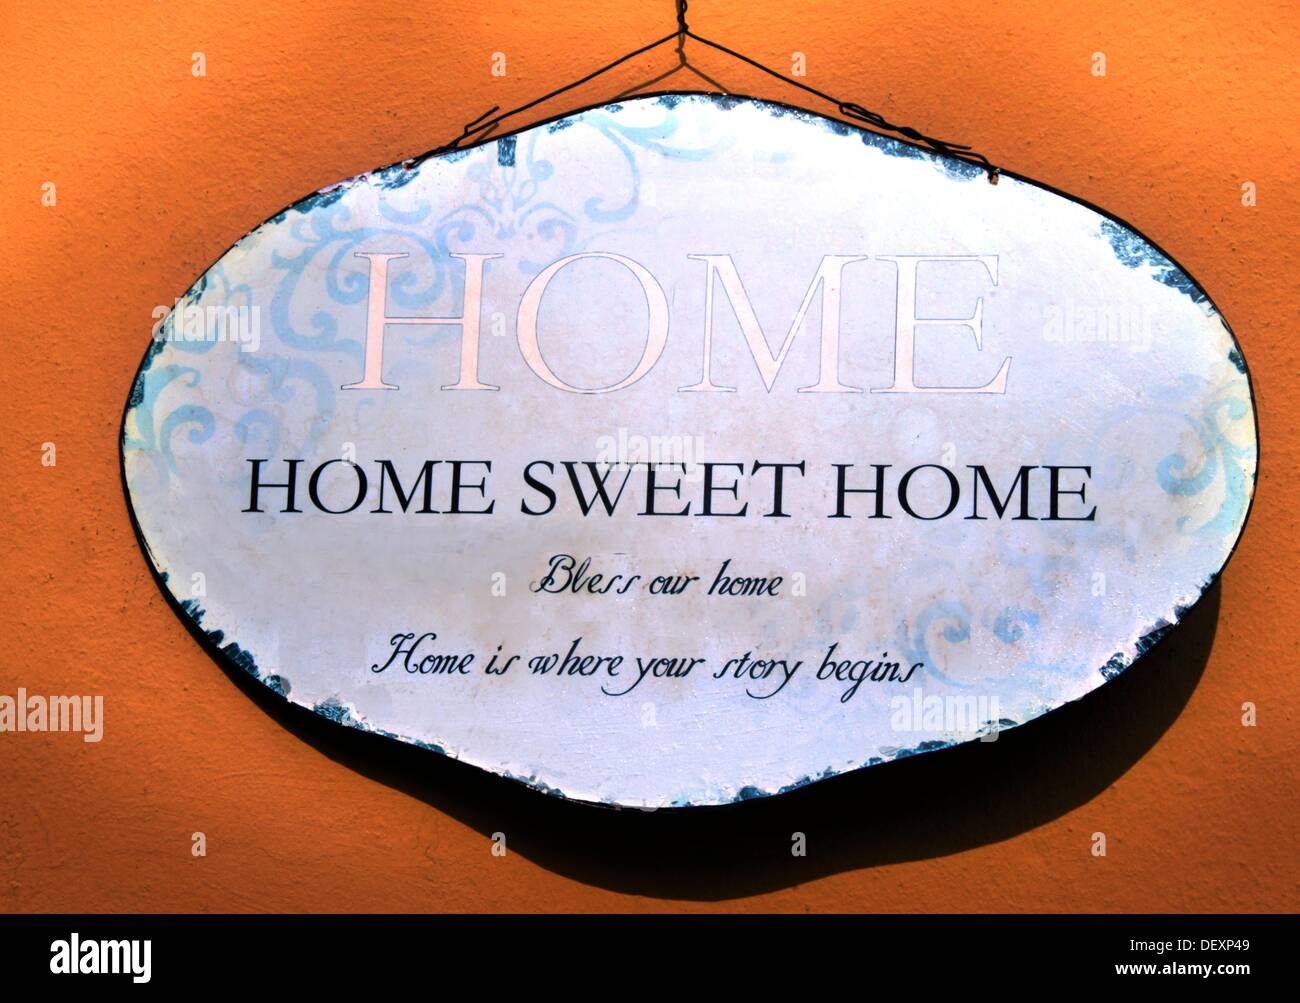 ´Home sweet home´ sign, South Africa - Stock Image